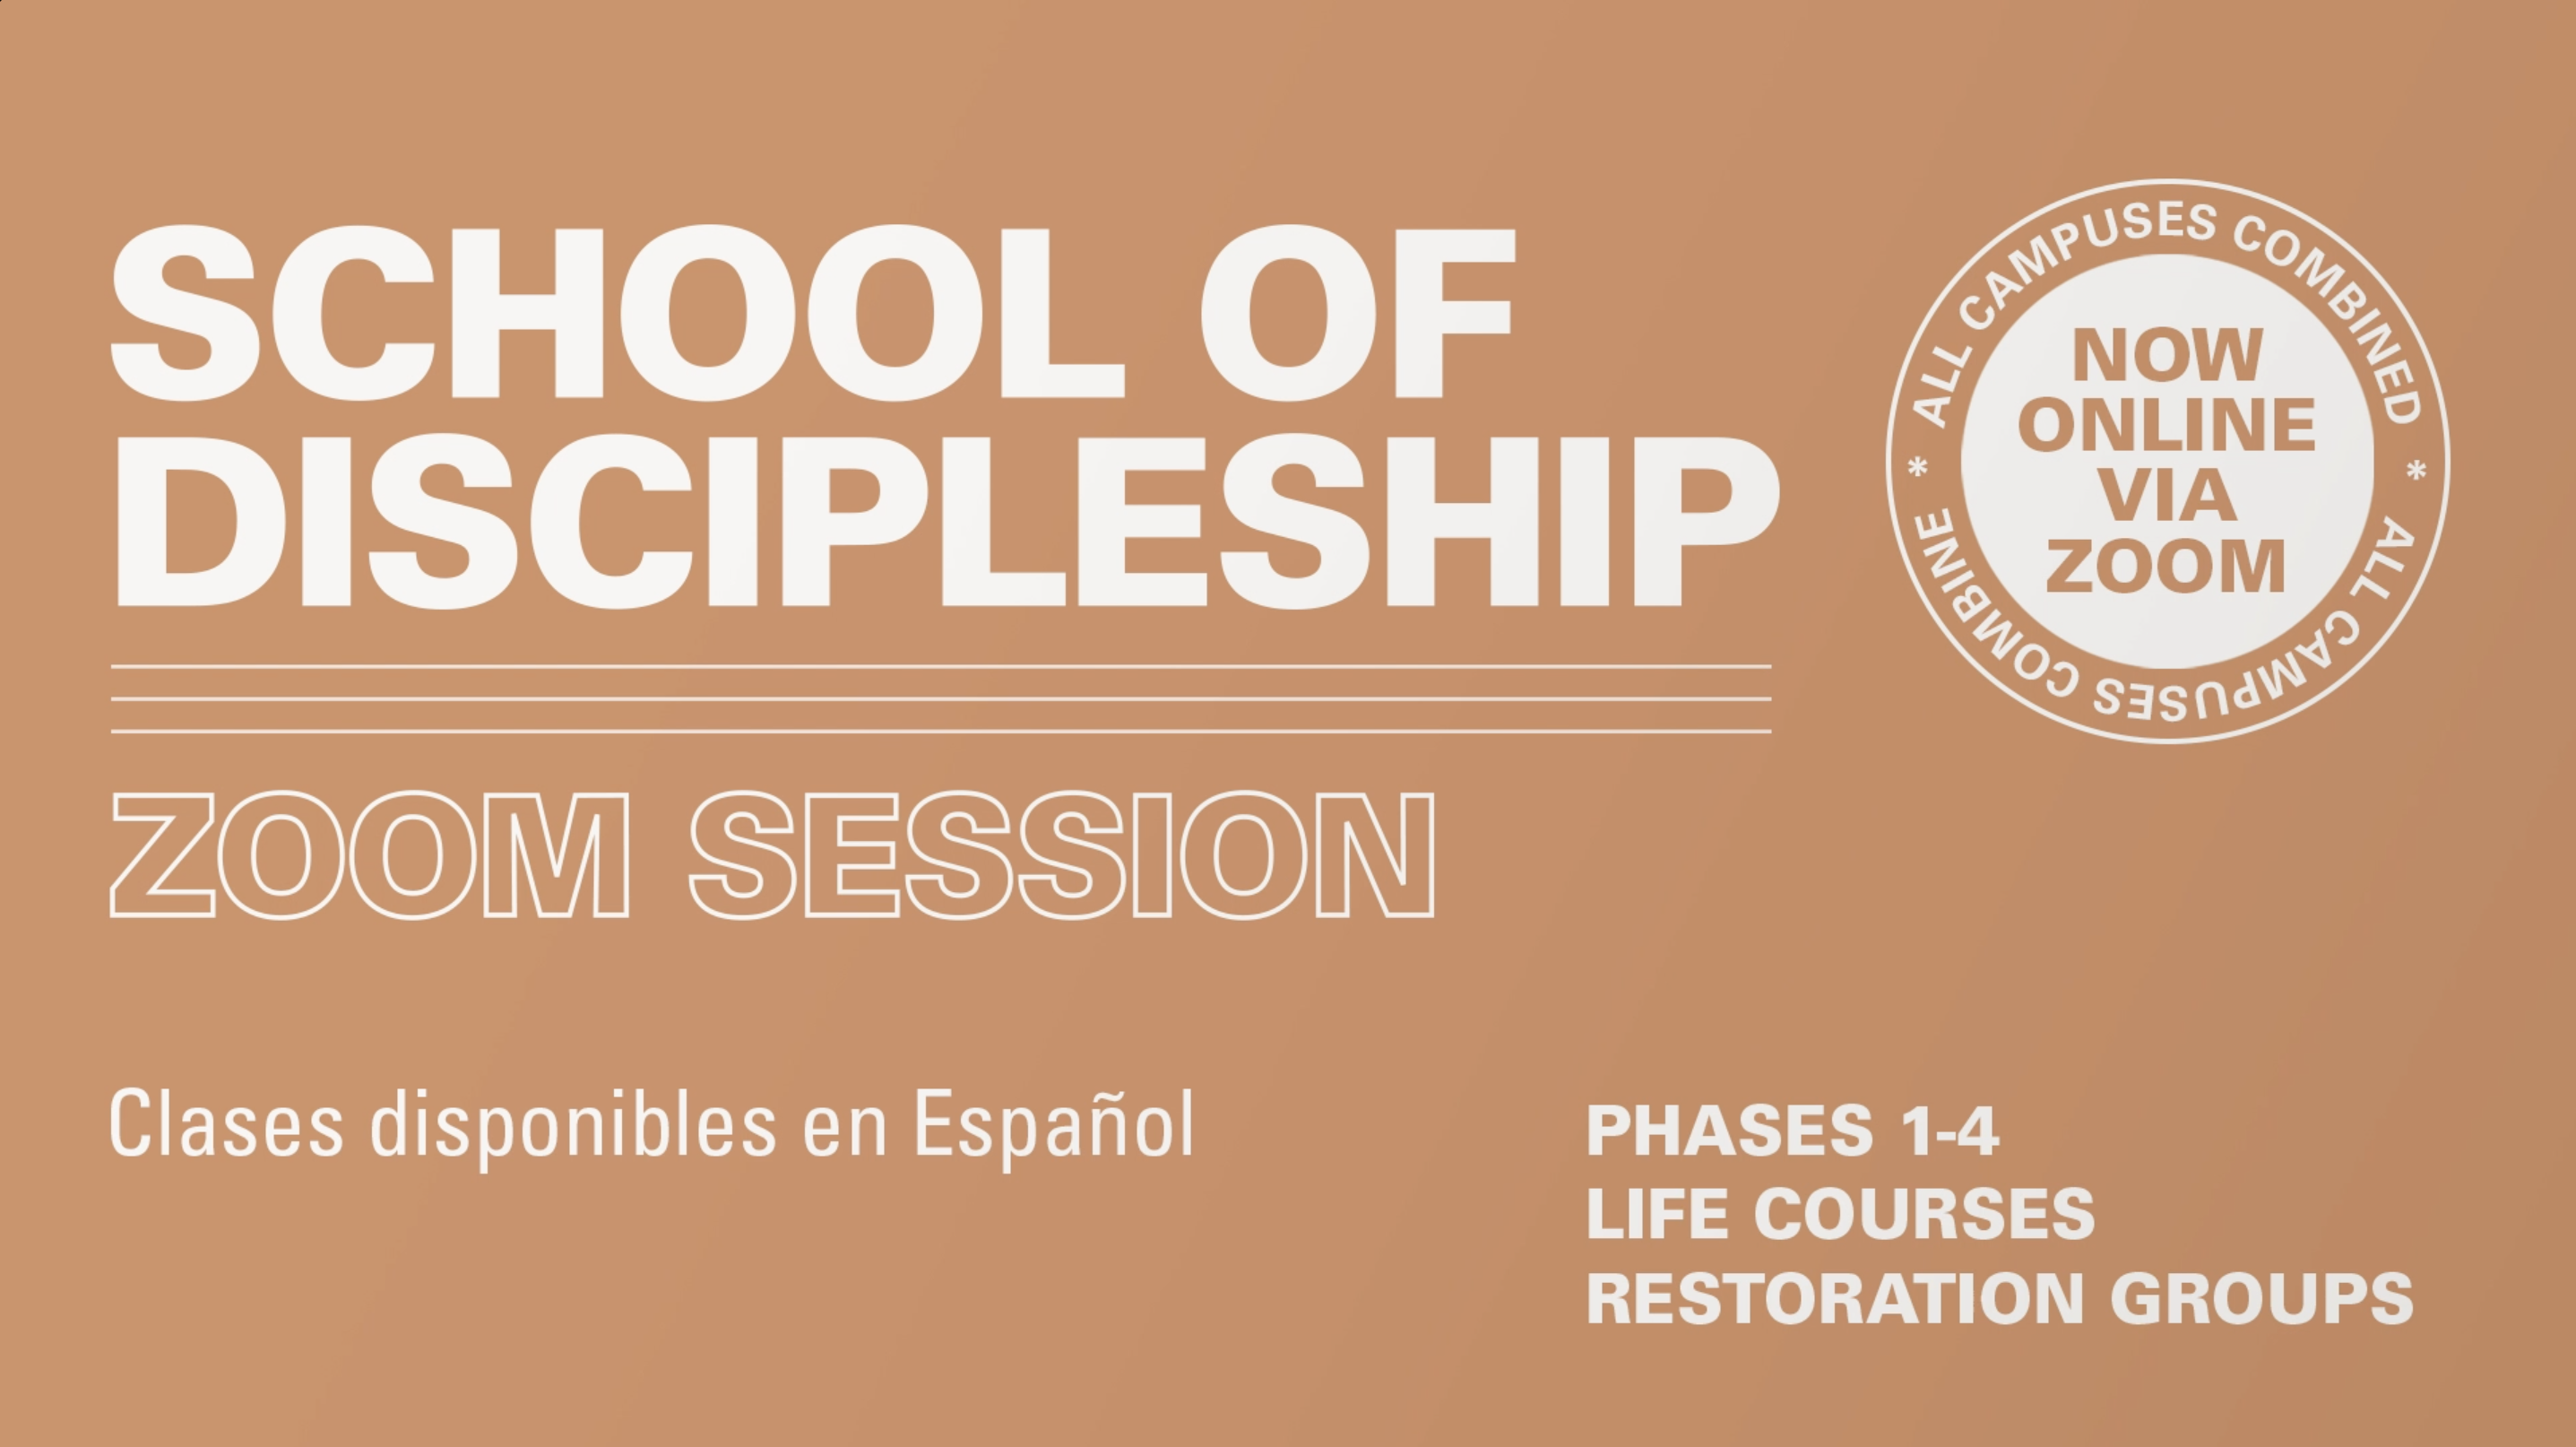 School of Discipleship at the Cumming campus